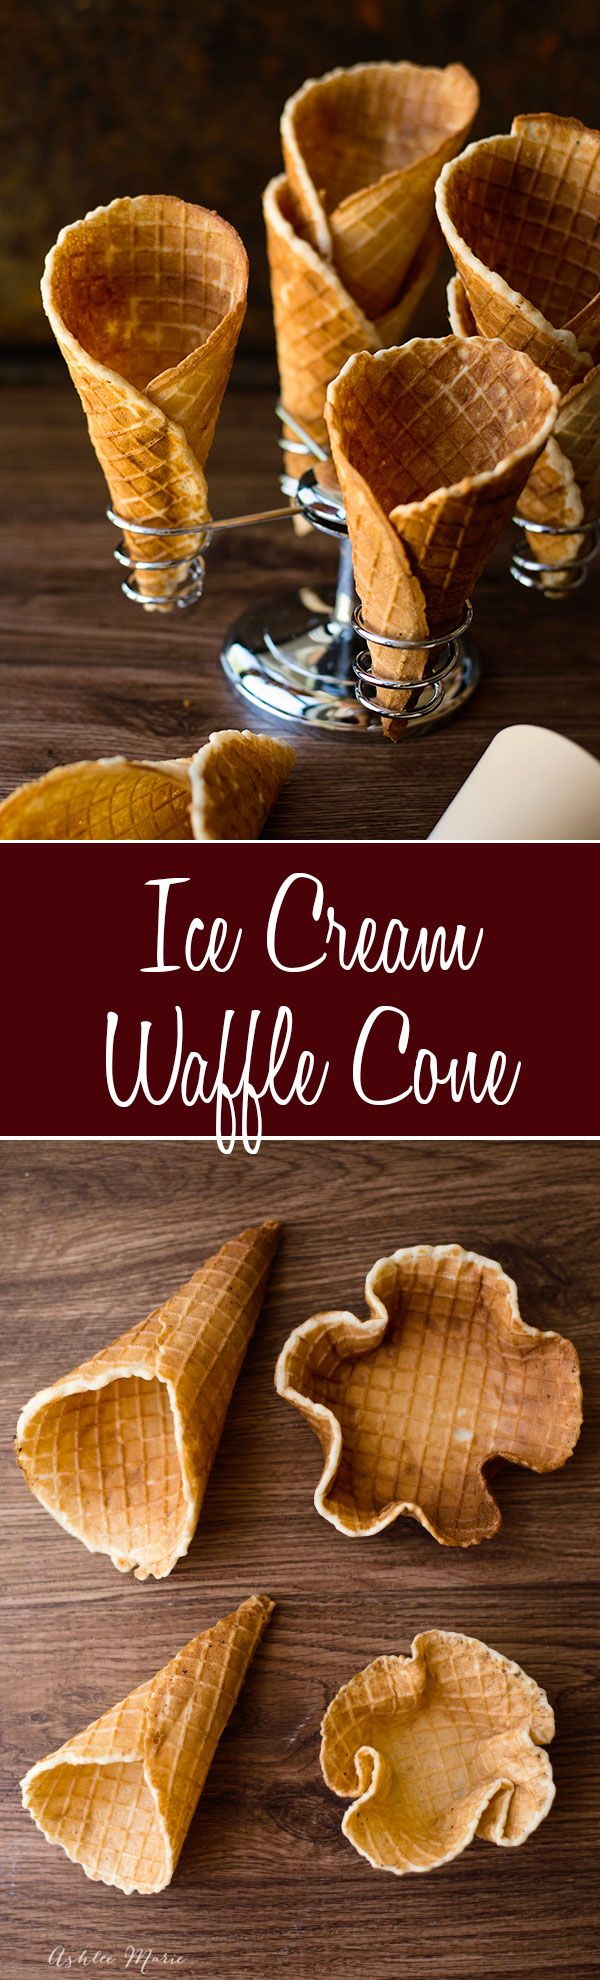 Homemade waffle cones and bowls